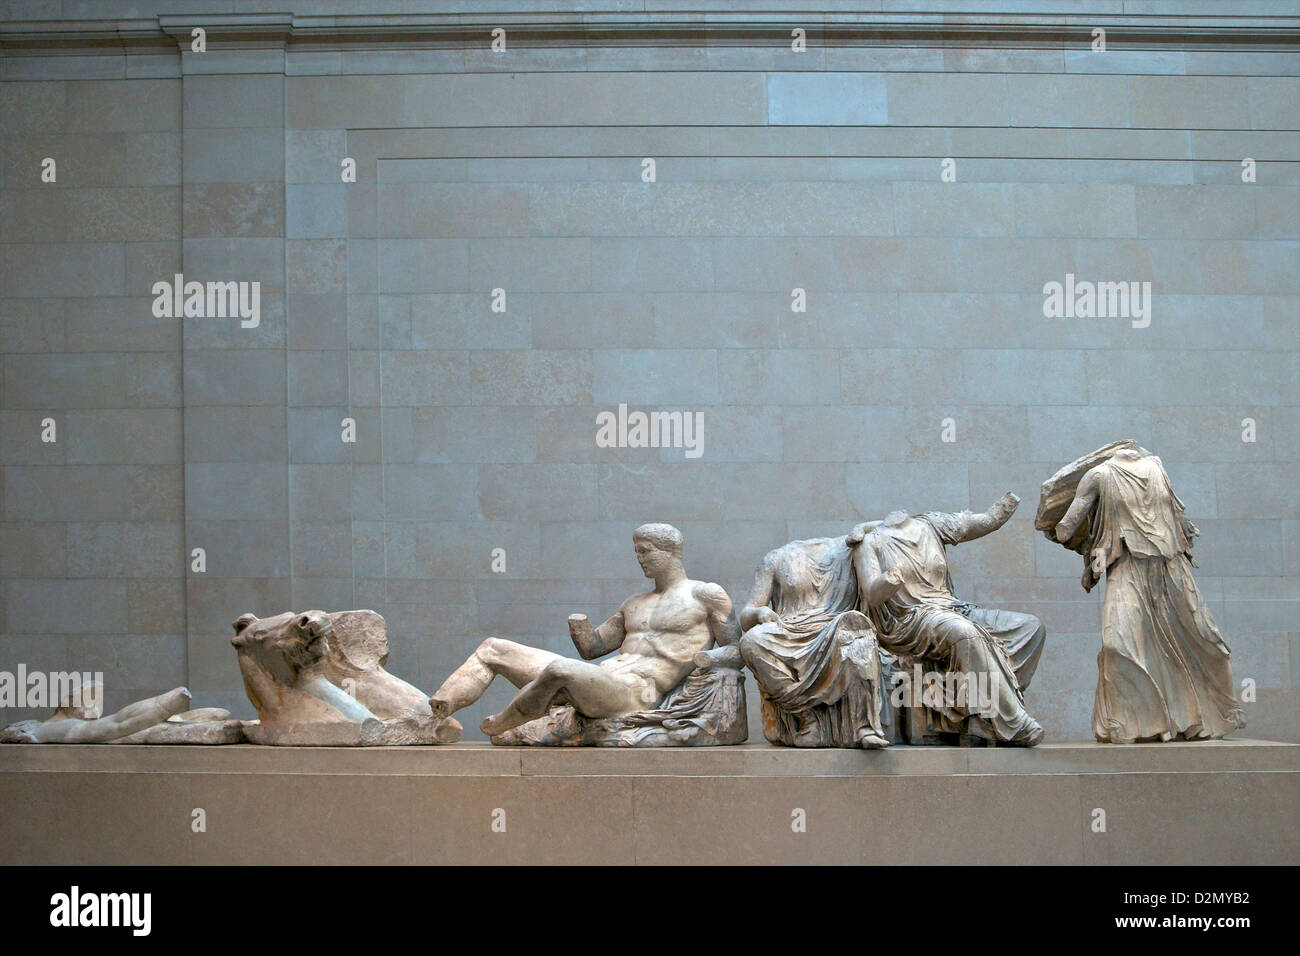 Sculptures from the East Pediment, Parthenon, British Museum, London, England, UK, GB, British Isles Stock Photo